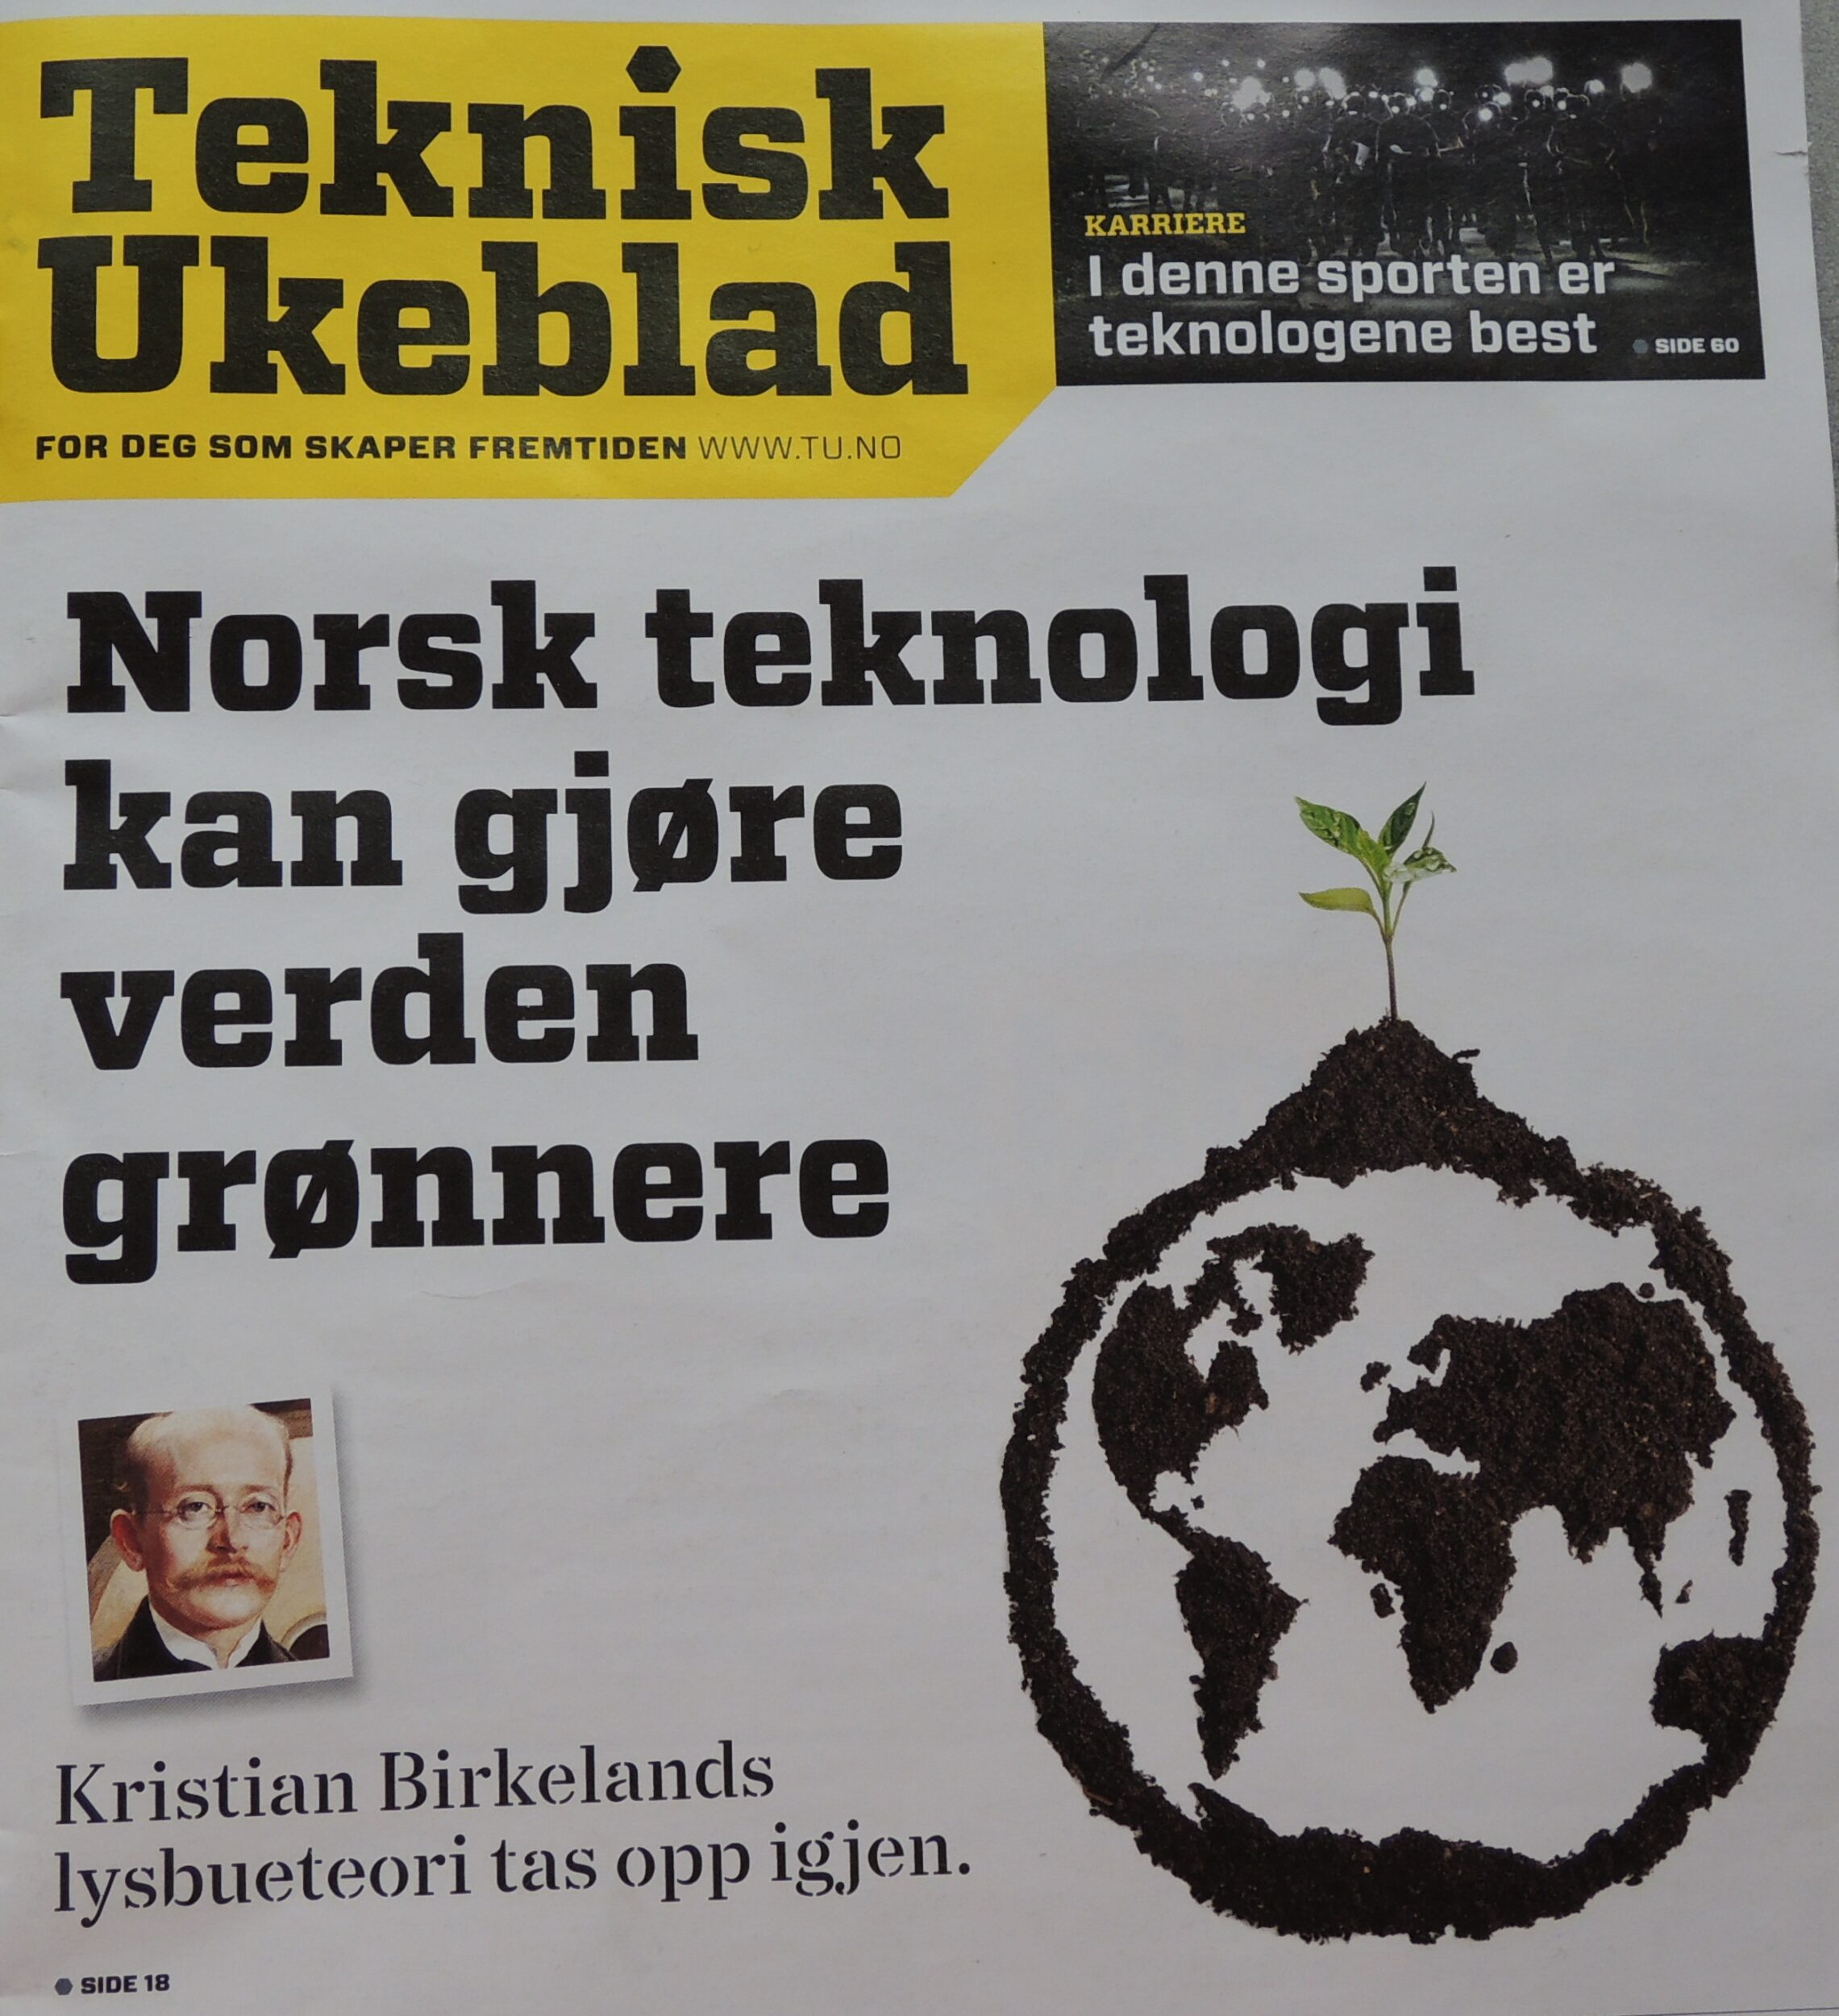 Teknisk Ukeblad is a highly regarded weekly techology newspaper in Norway.  In the September 26th 2013 issue Tekniske Ukeblad is freaturing N2 Applied lifting the electric arc heritage from Professor Kristian Birkeland.